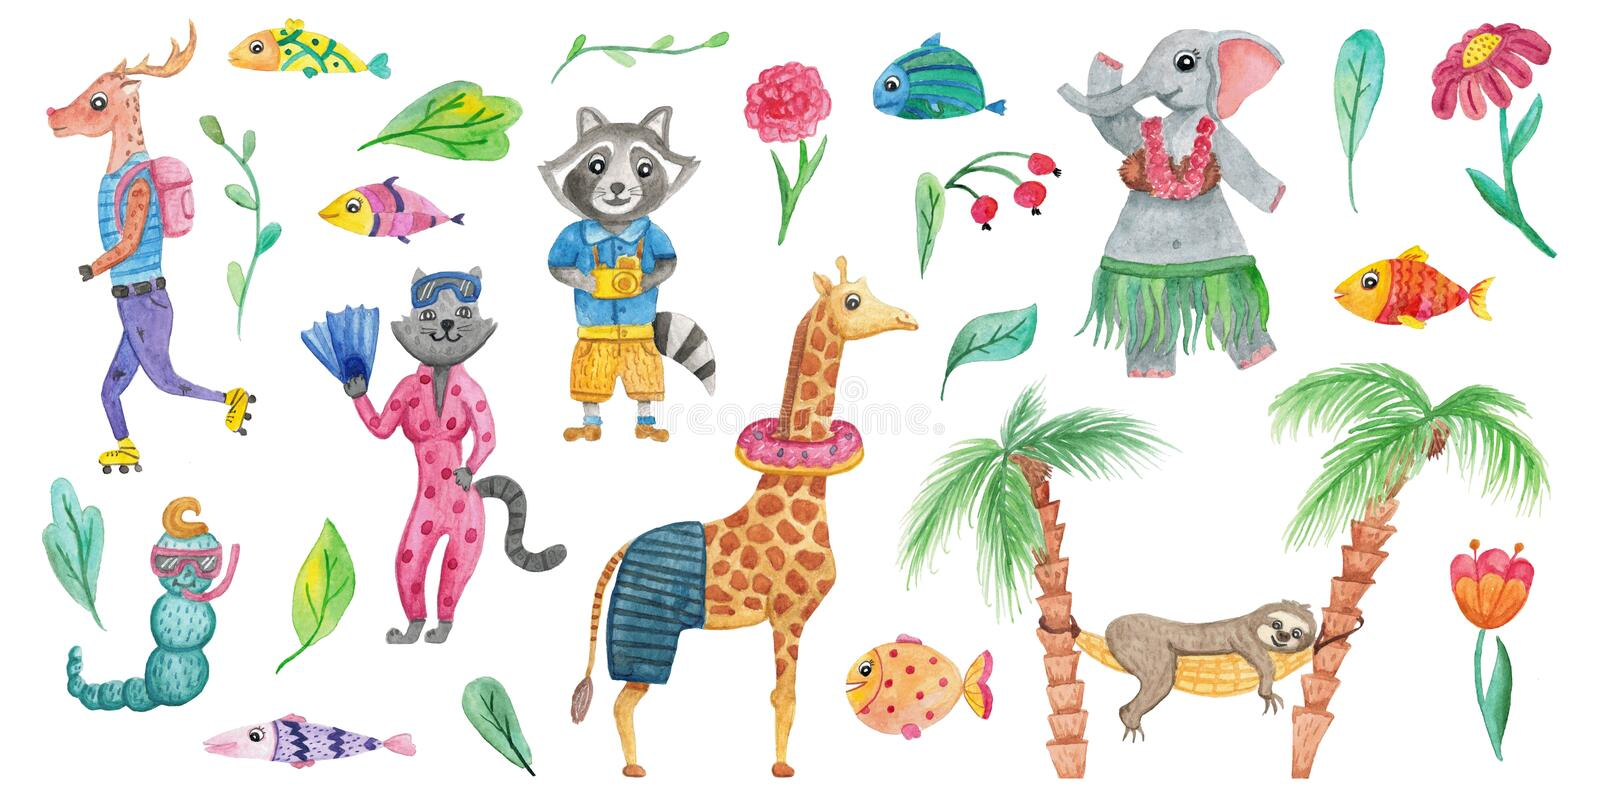 Set of cute watercolor animals, flowers and tropical leaves. Isolated hand drawn illustrations for design royalty free illustration